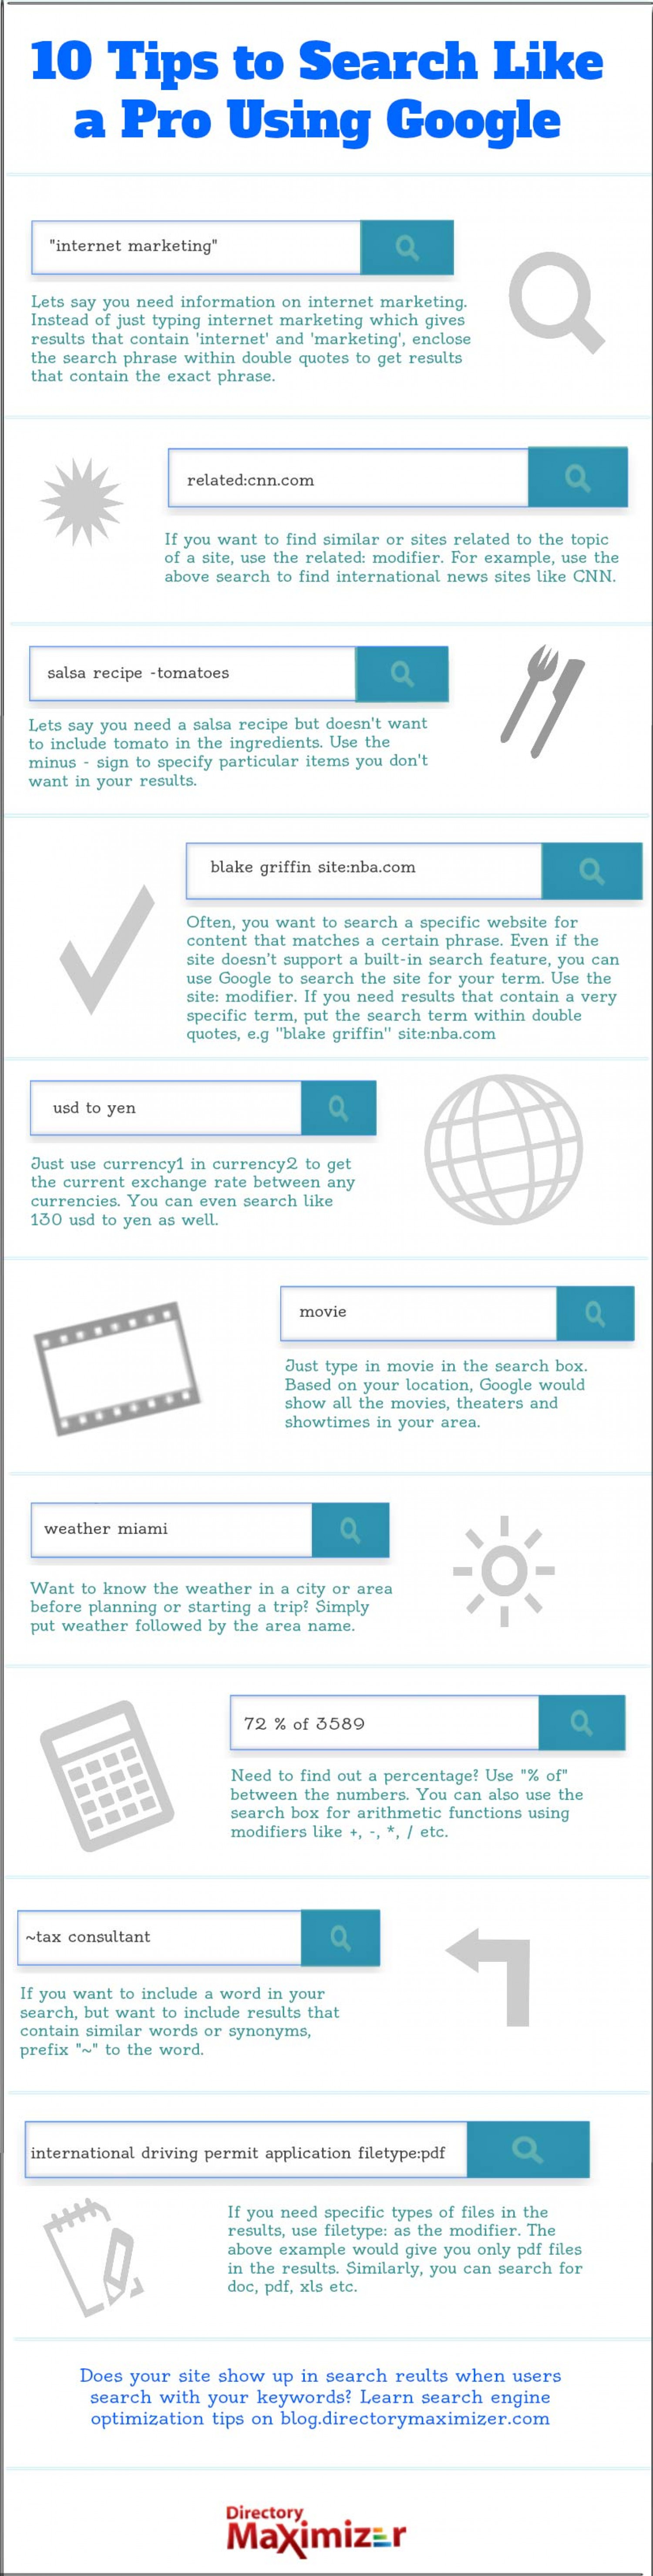 10 Tips to Search Like a Pro Using Google  Infographic